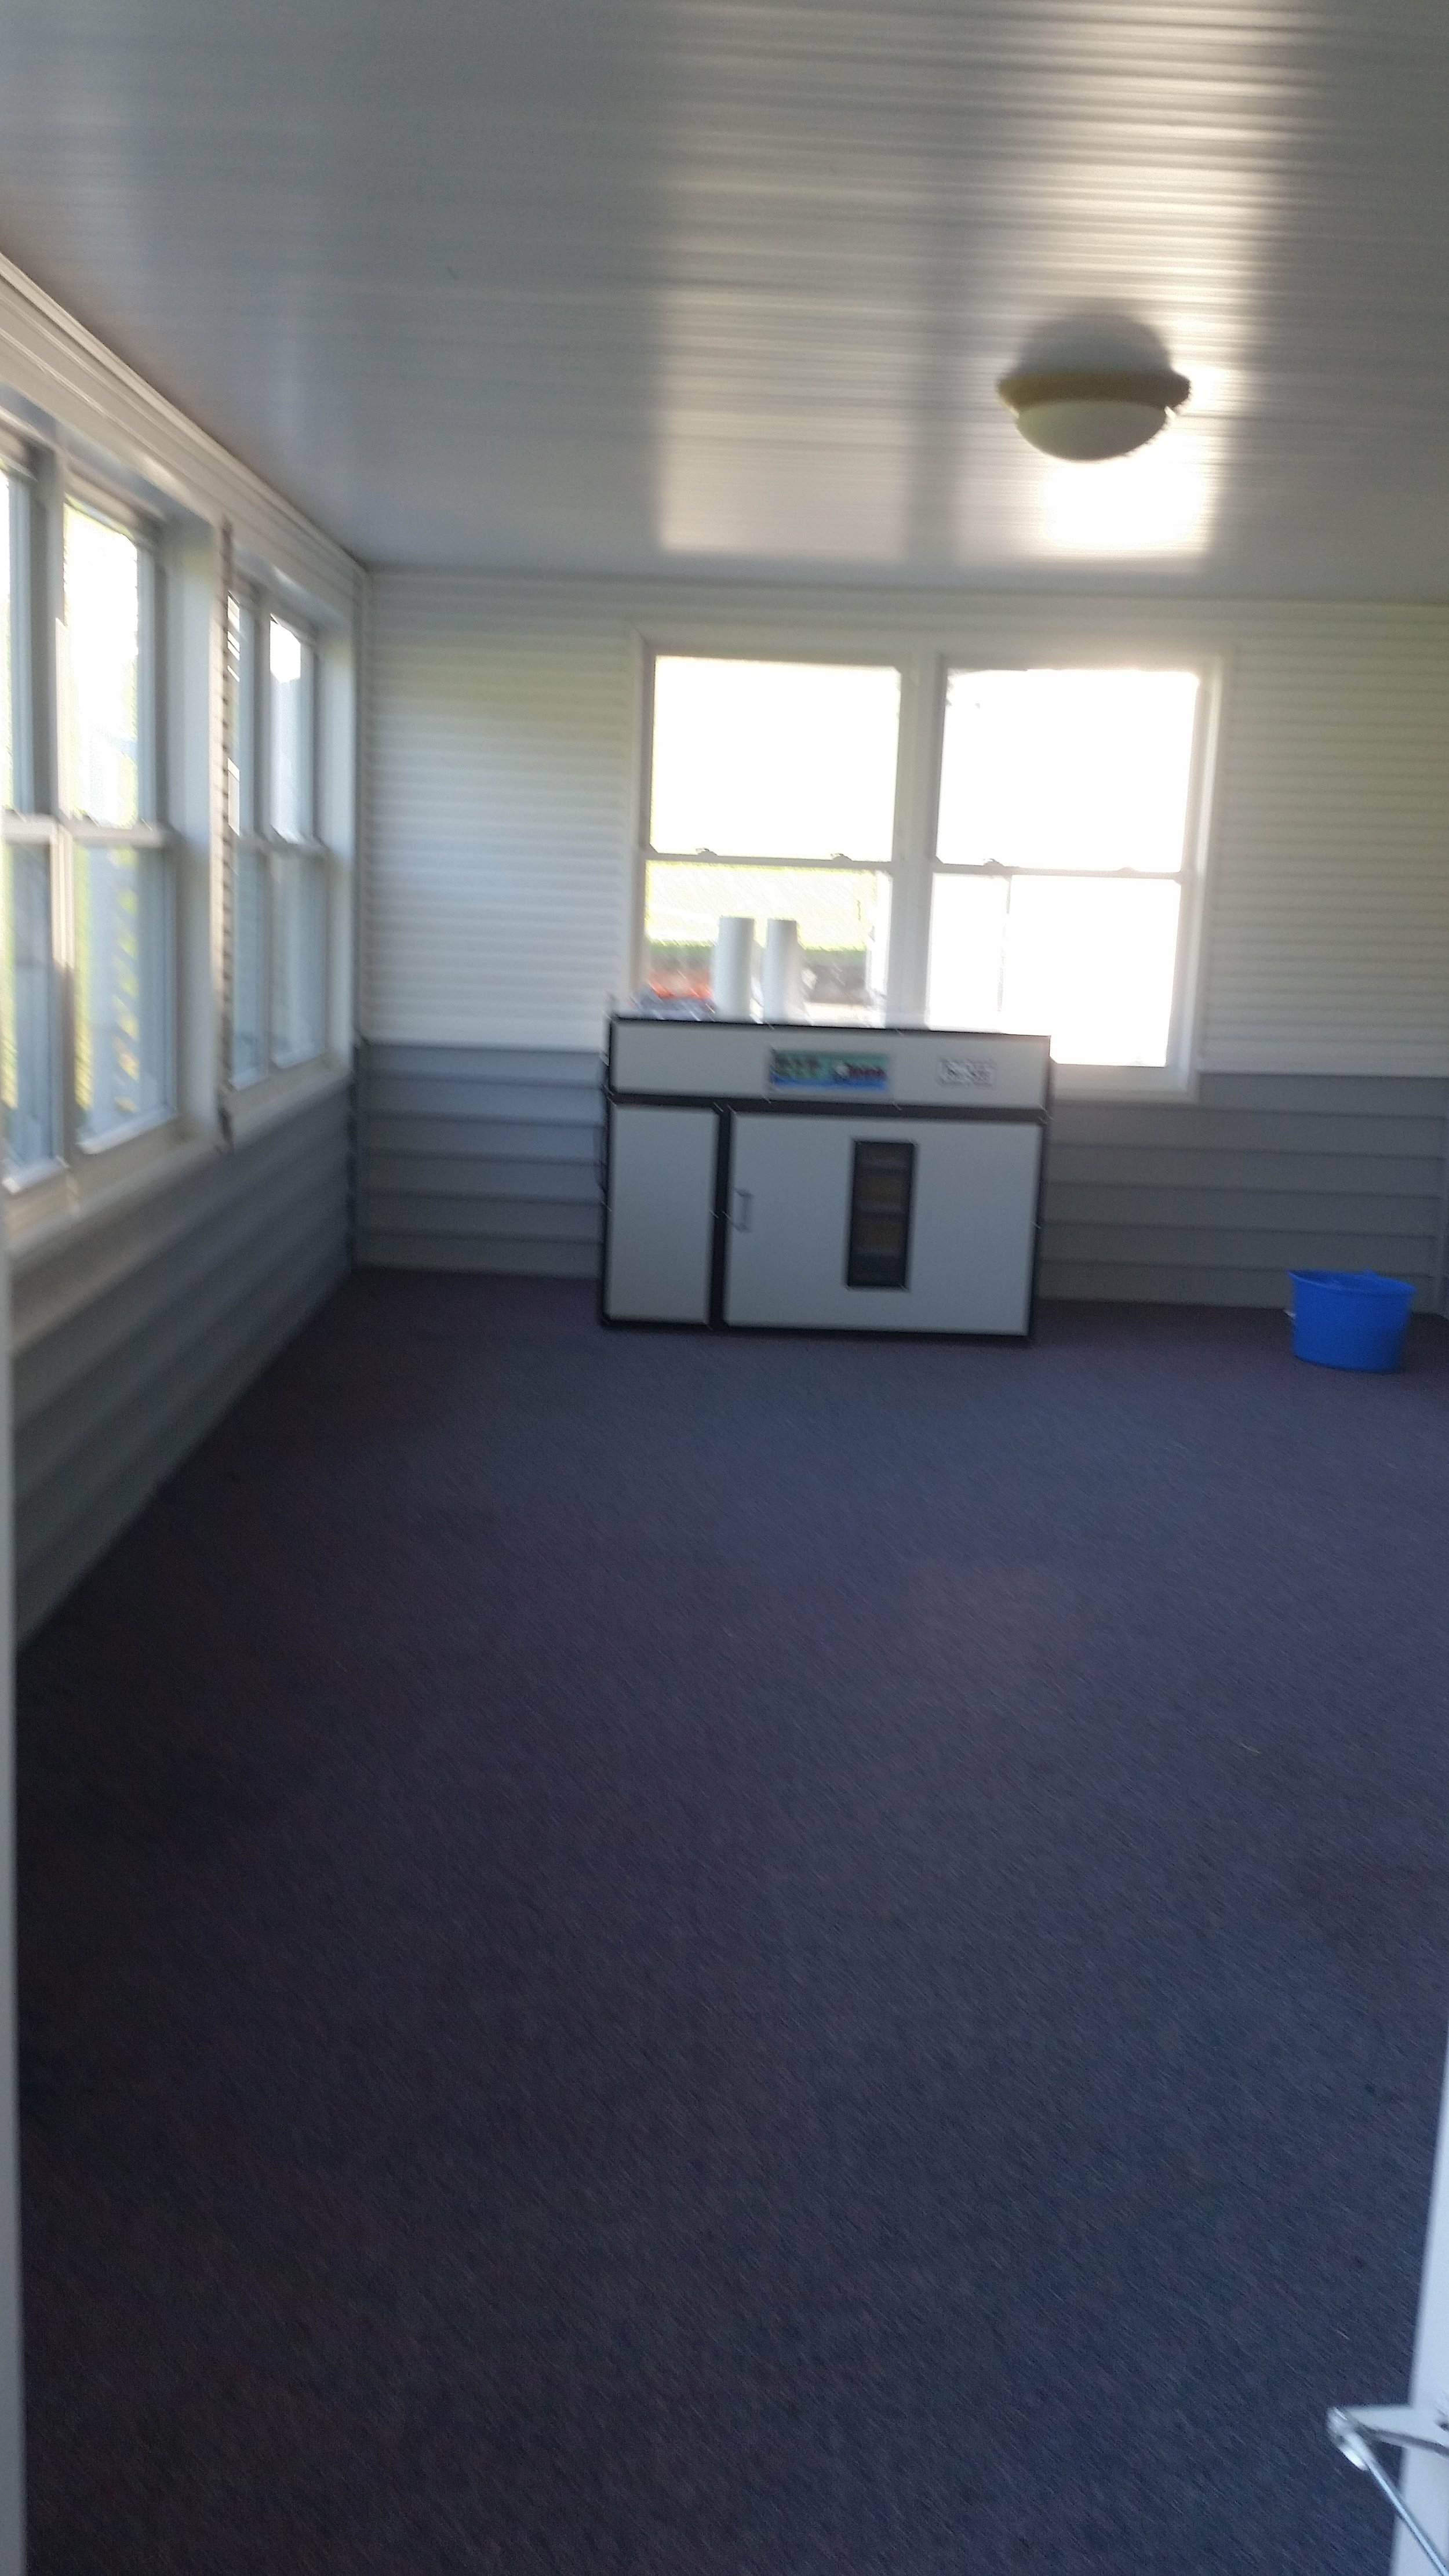 The empty chick room! The incubator looks small with everything else put up in storage. All quiet until January.